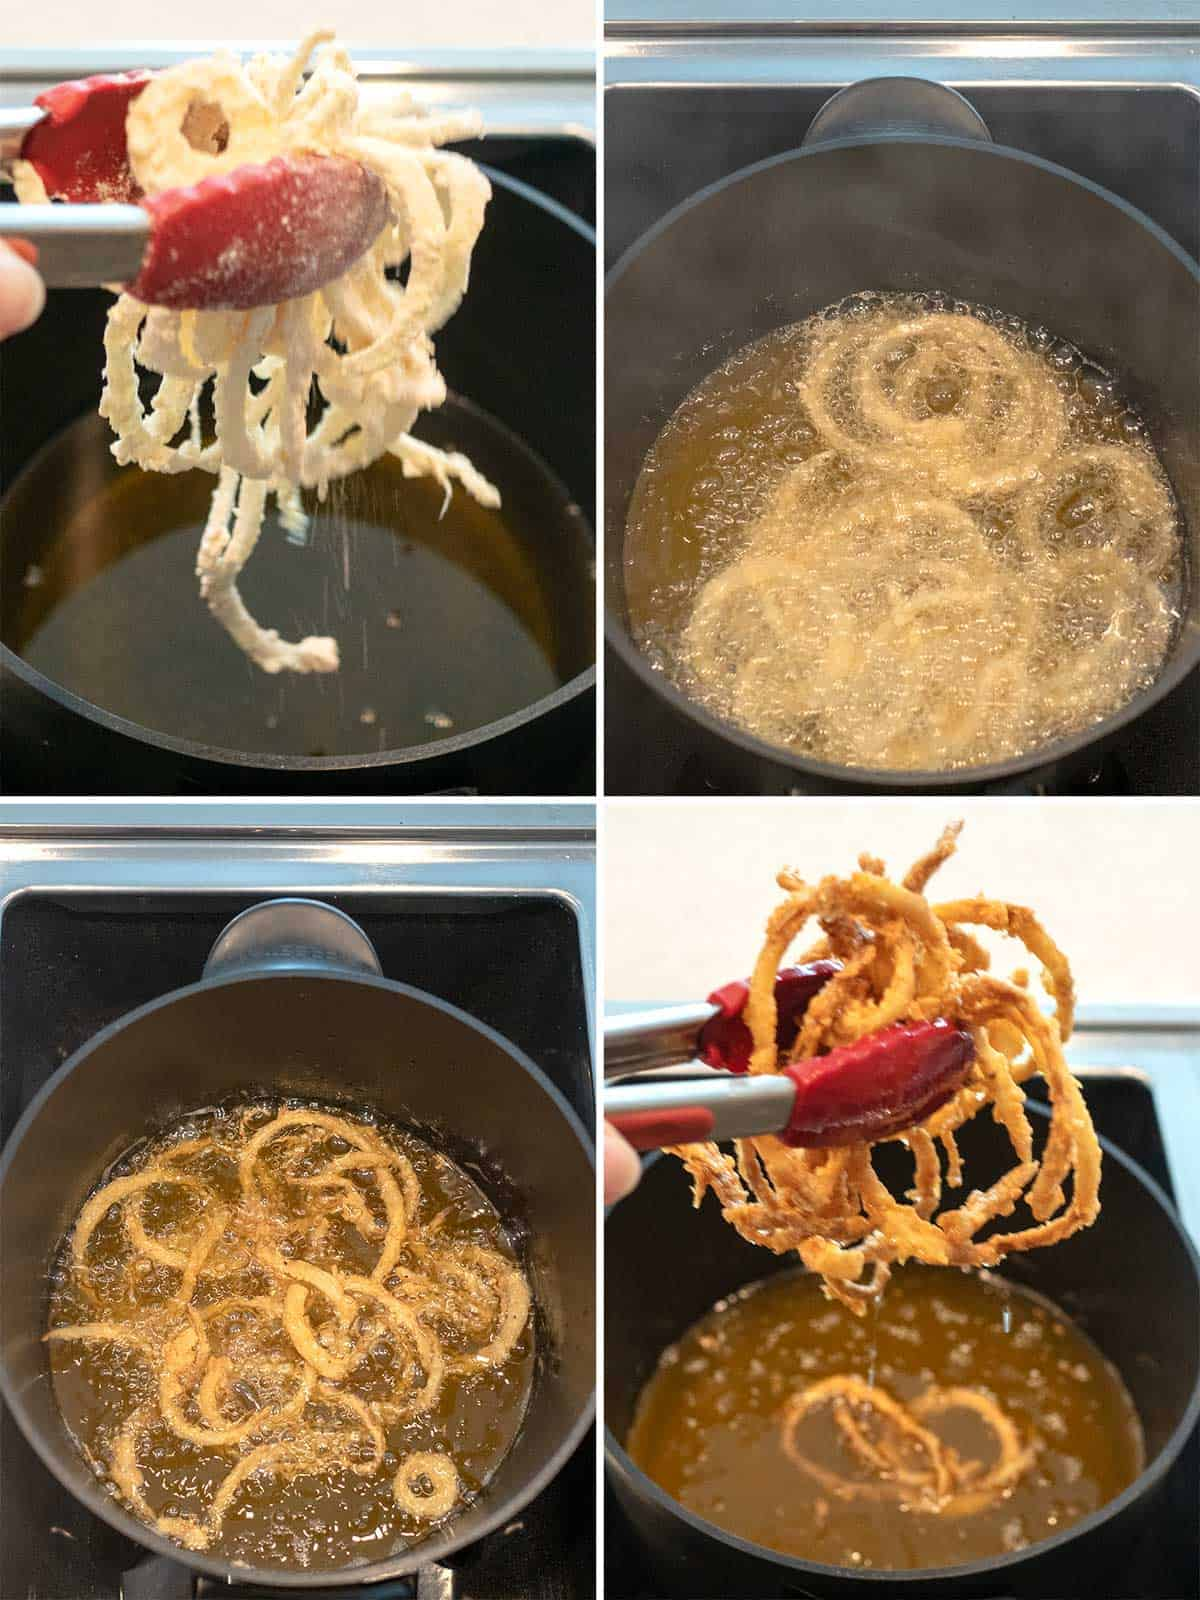 Cooking the onion strings in hot oil.